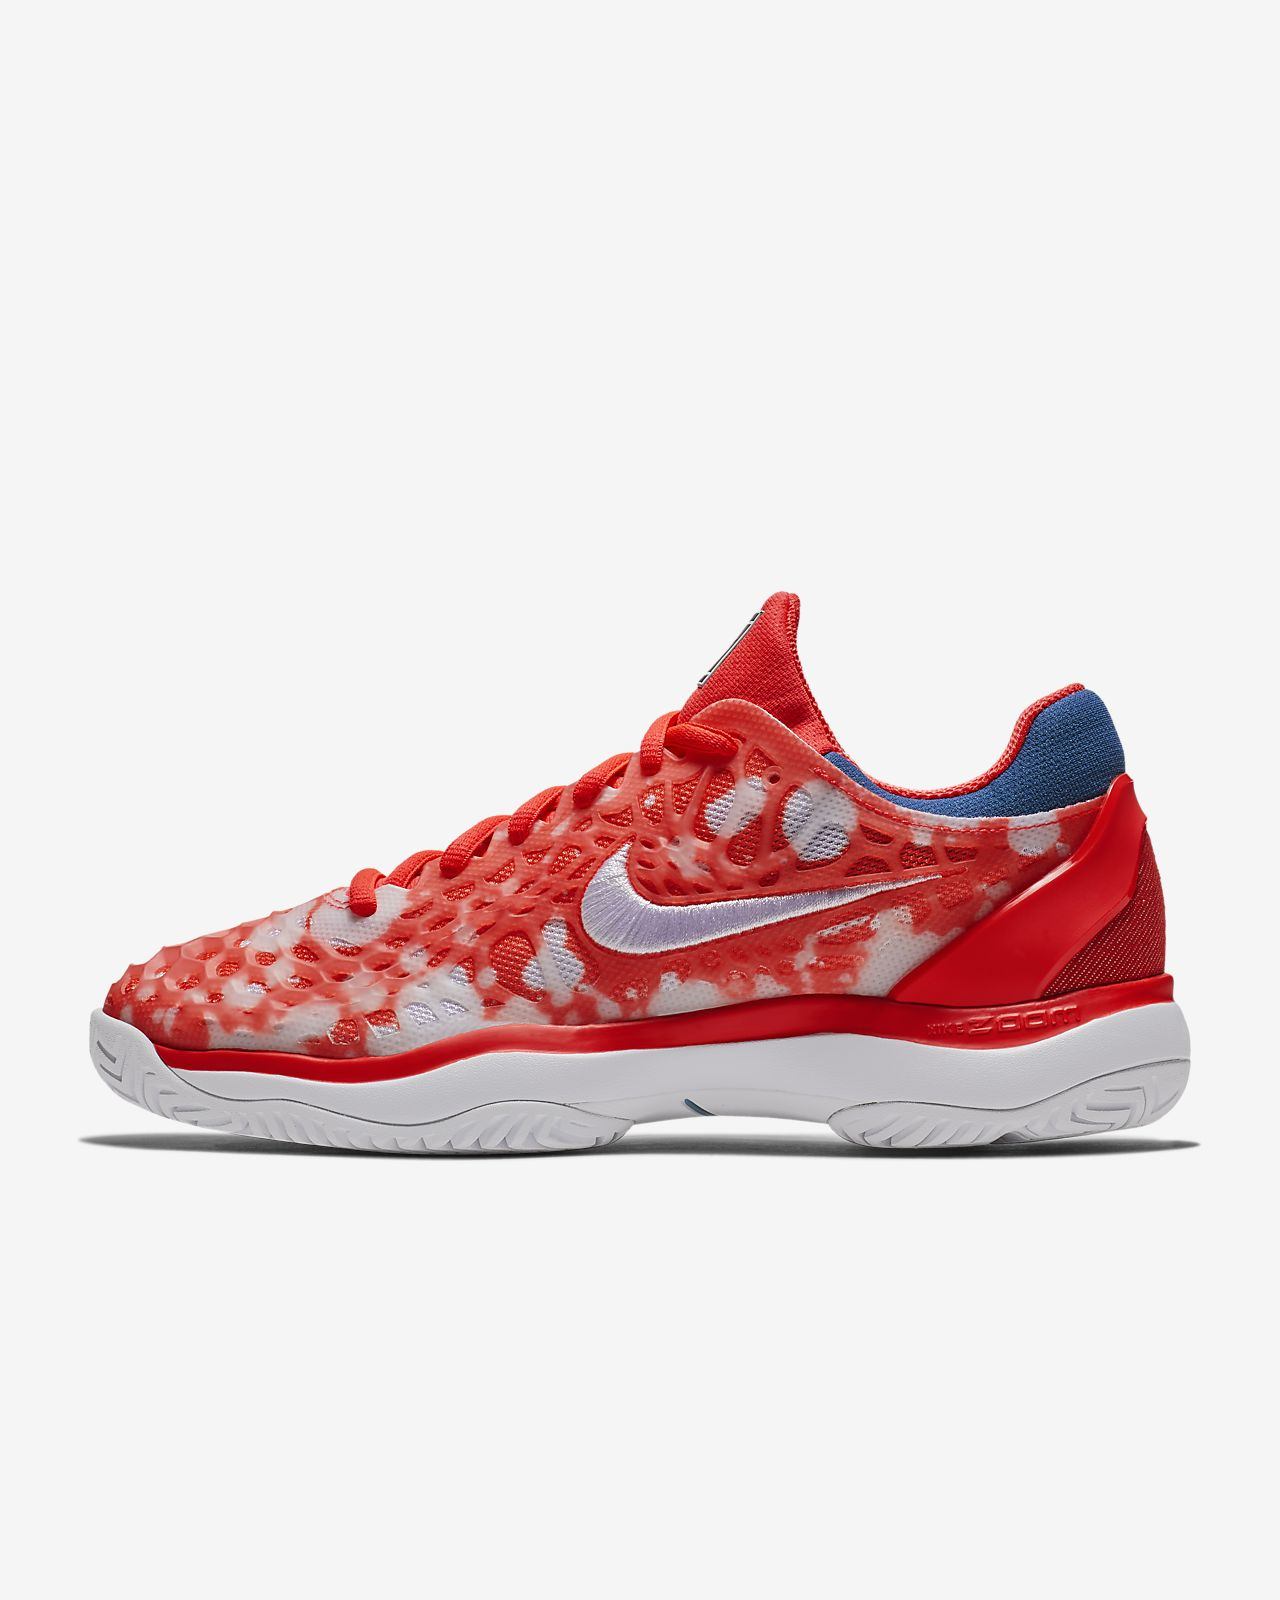 the latest 19bd2 b0fe0 ... Chaussure de tennis NikeCourt Air Zoom Cage 3 Premium pour Femme